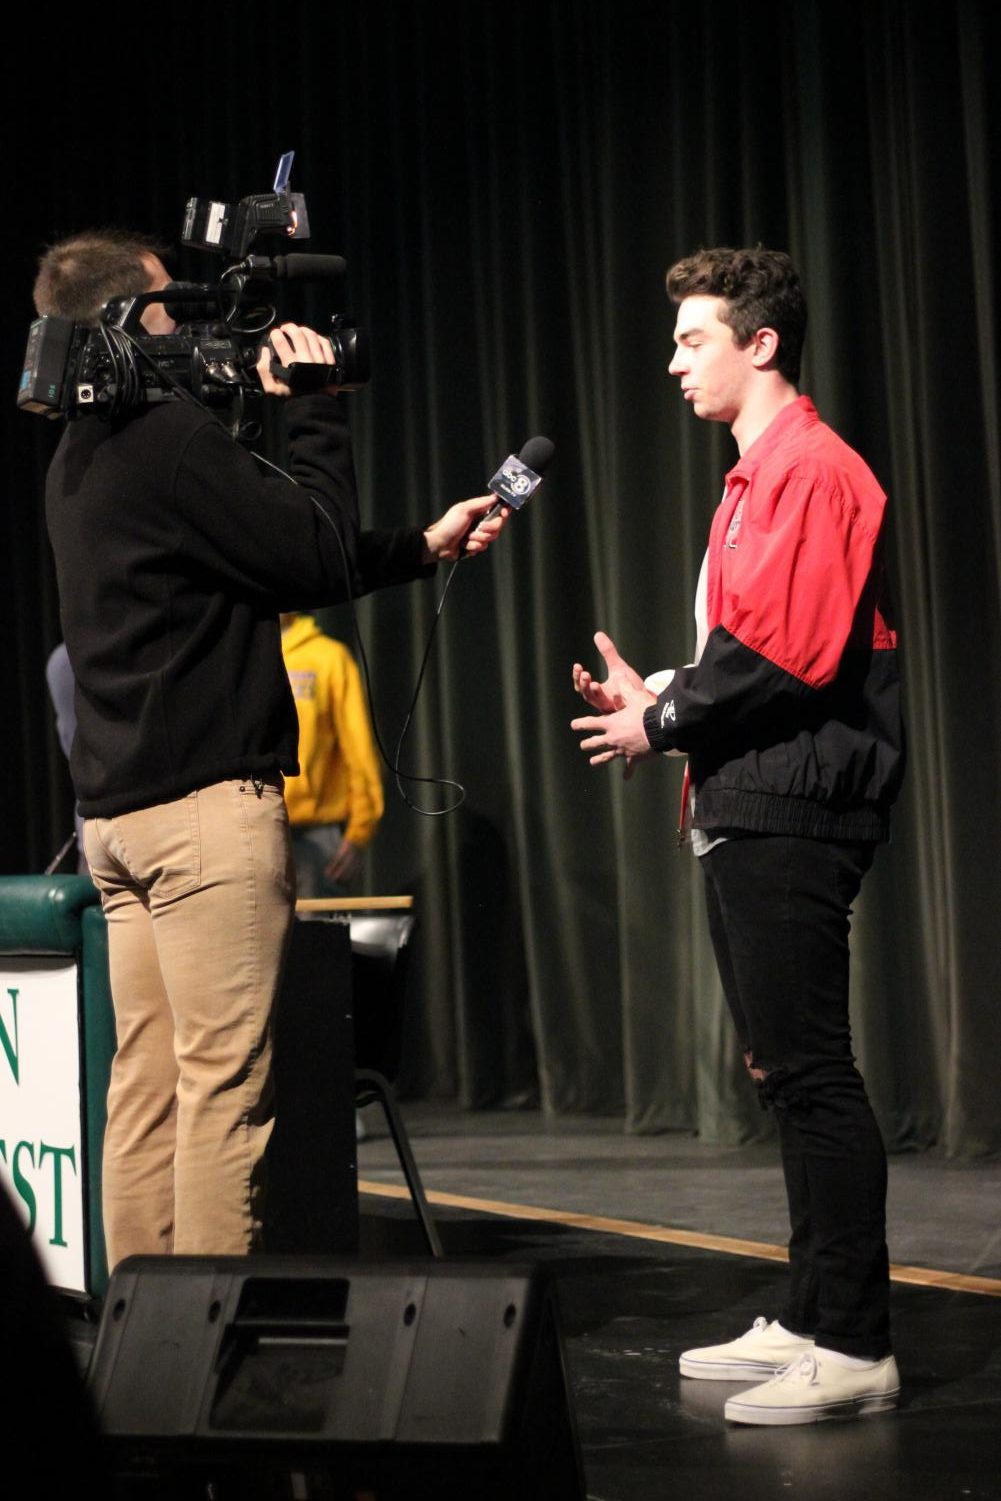 Senior Caden McCormack is interviewed on Feb. 6, after signing with 4 fellow students.